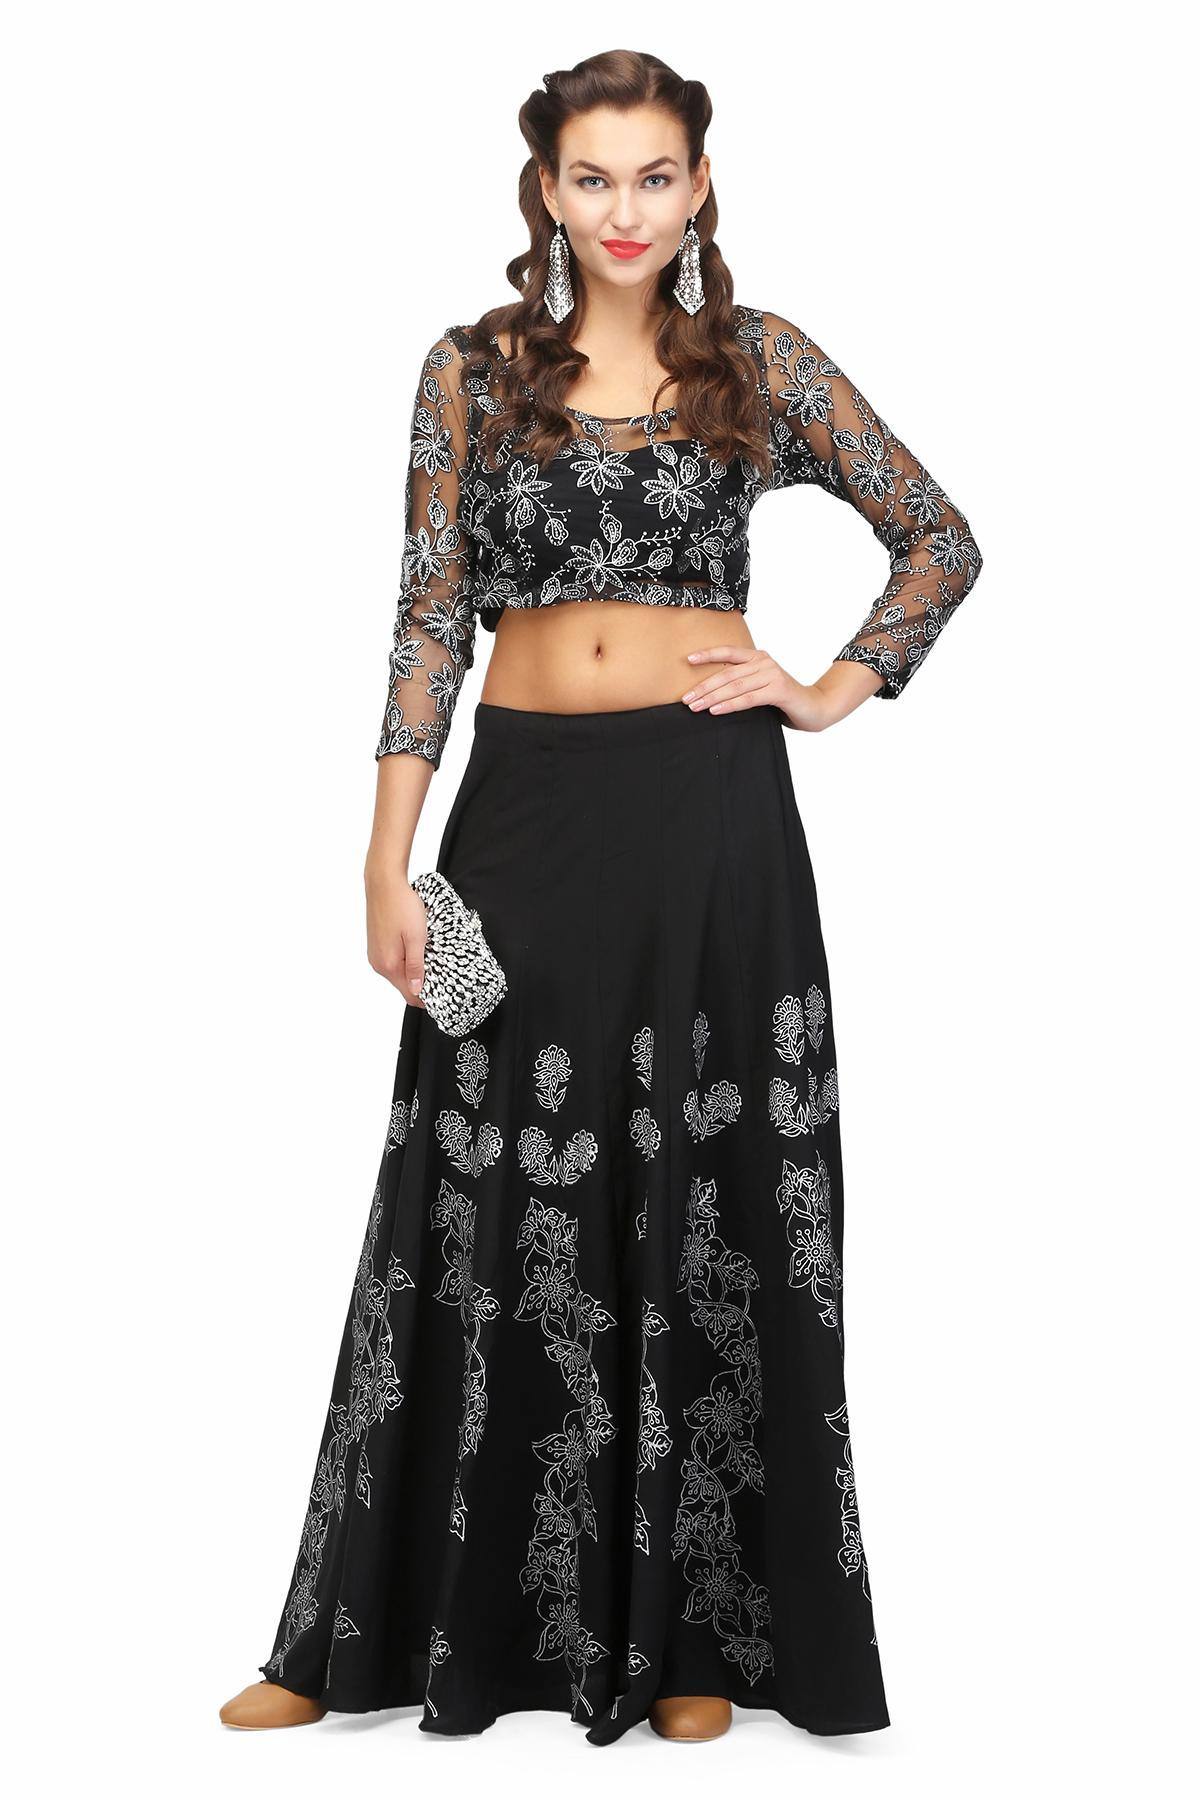 53c555b23 Aaina by Aditi ethnic Indo Western Black & White Crop Top Skirt Black  ethnic-crop ...